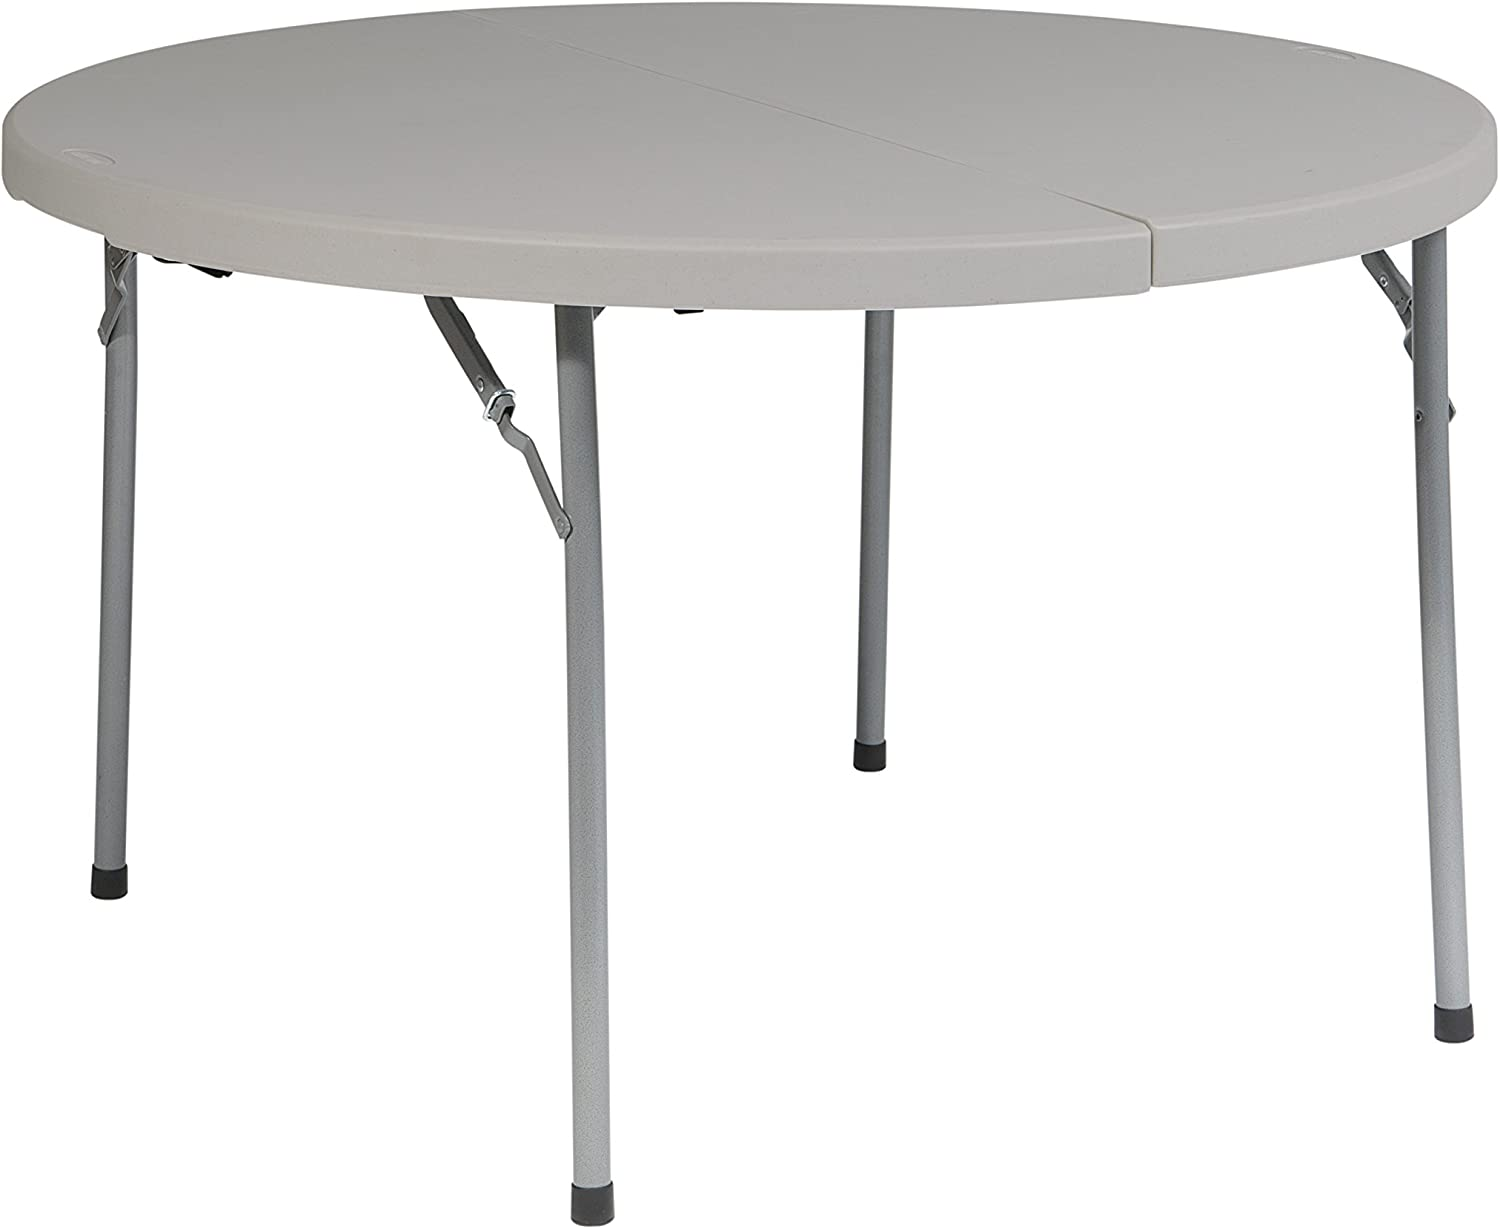 Office Star Resin Multipurpose Round Table. 48-Inch, Center Folding